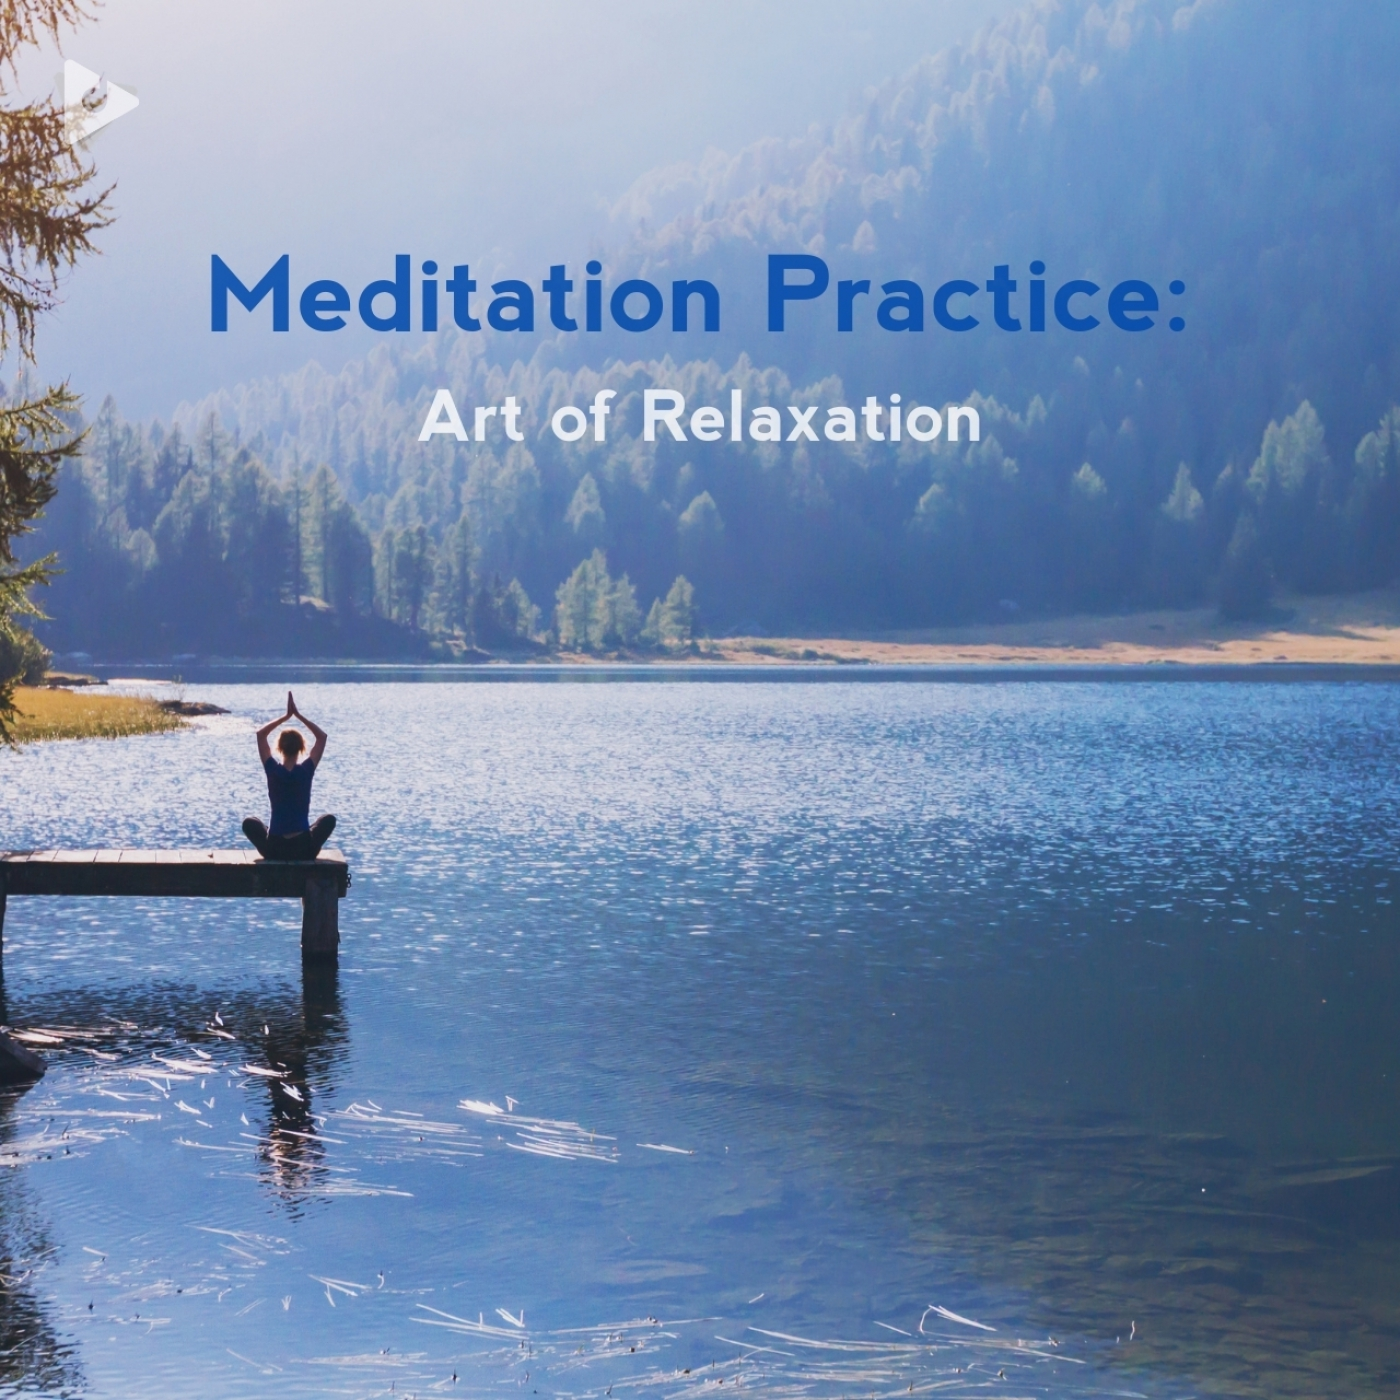 Meditation Practice: Art of Relaxation